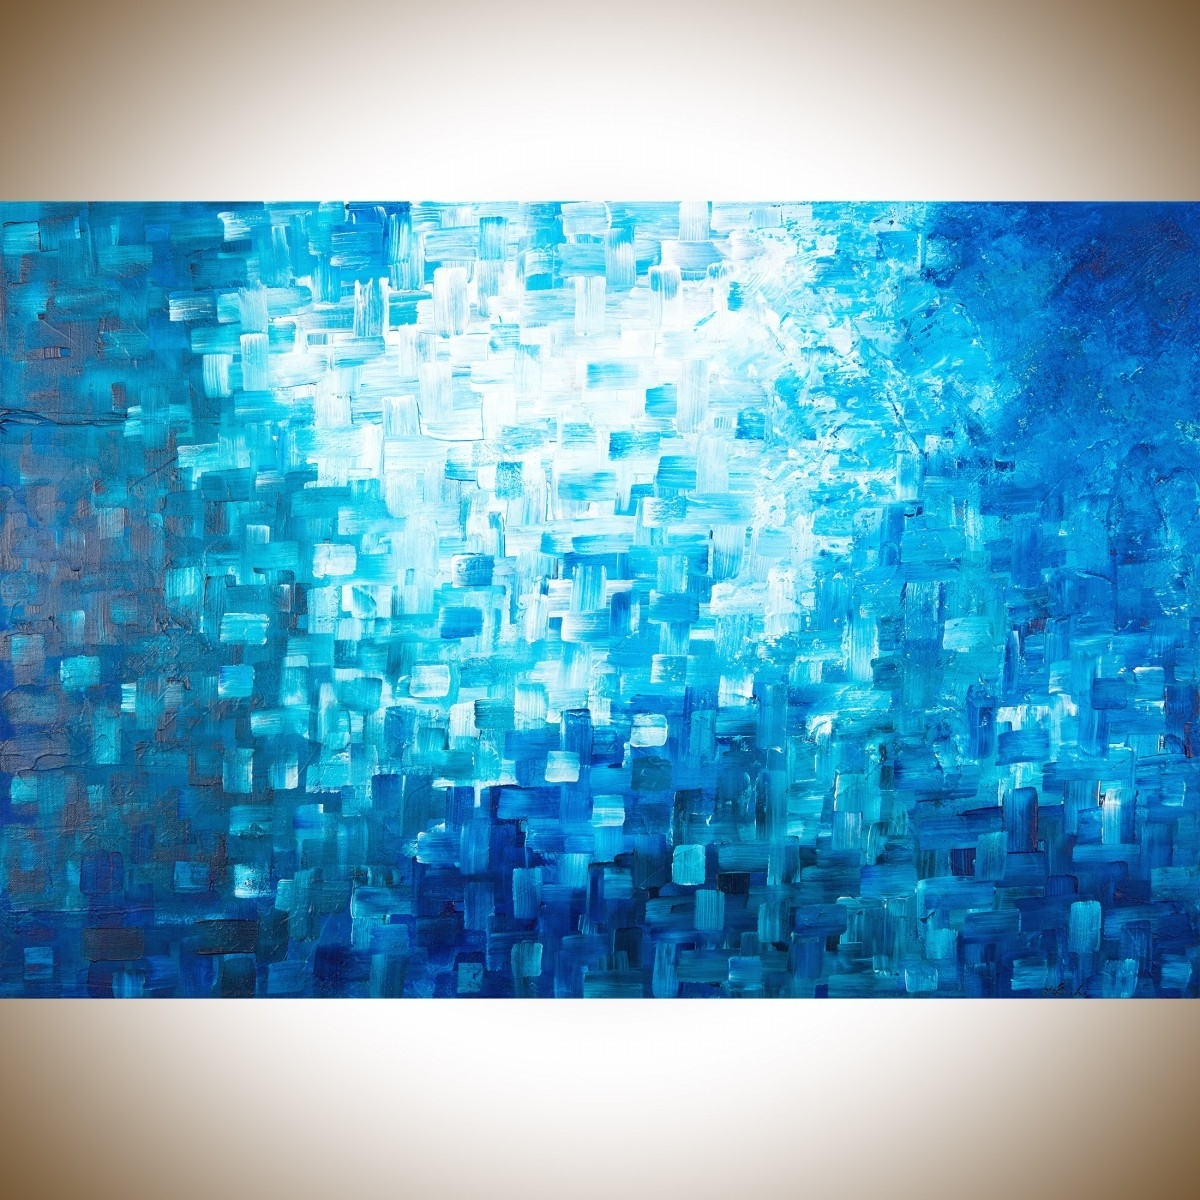 "Healingqiqigallery 36""x24"" Stretched Canvas Original Modern Inside Most Recent Abstract Wall Art For Office (View 3 of 20)"